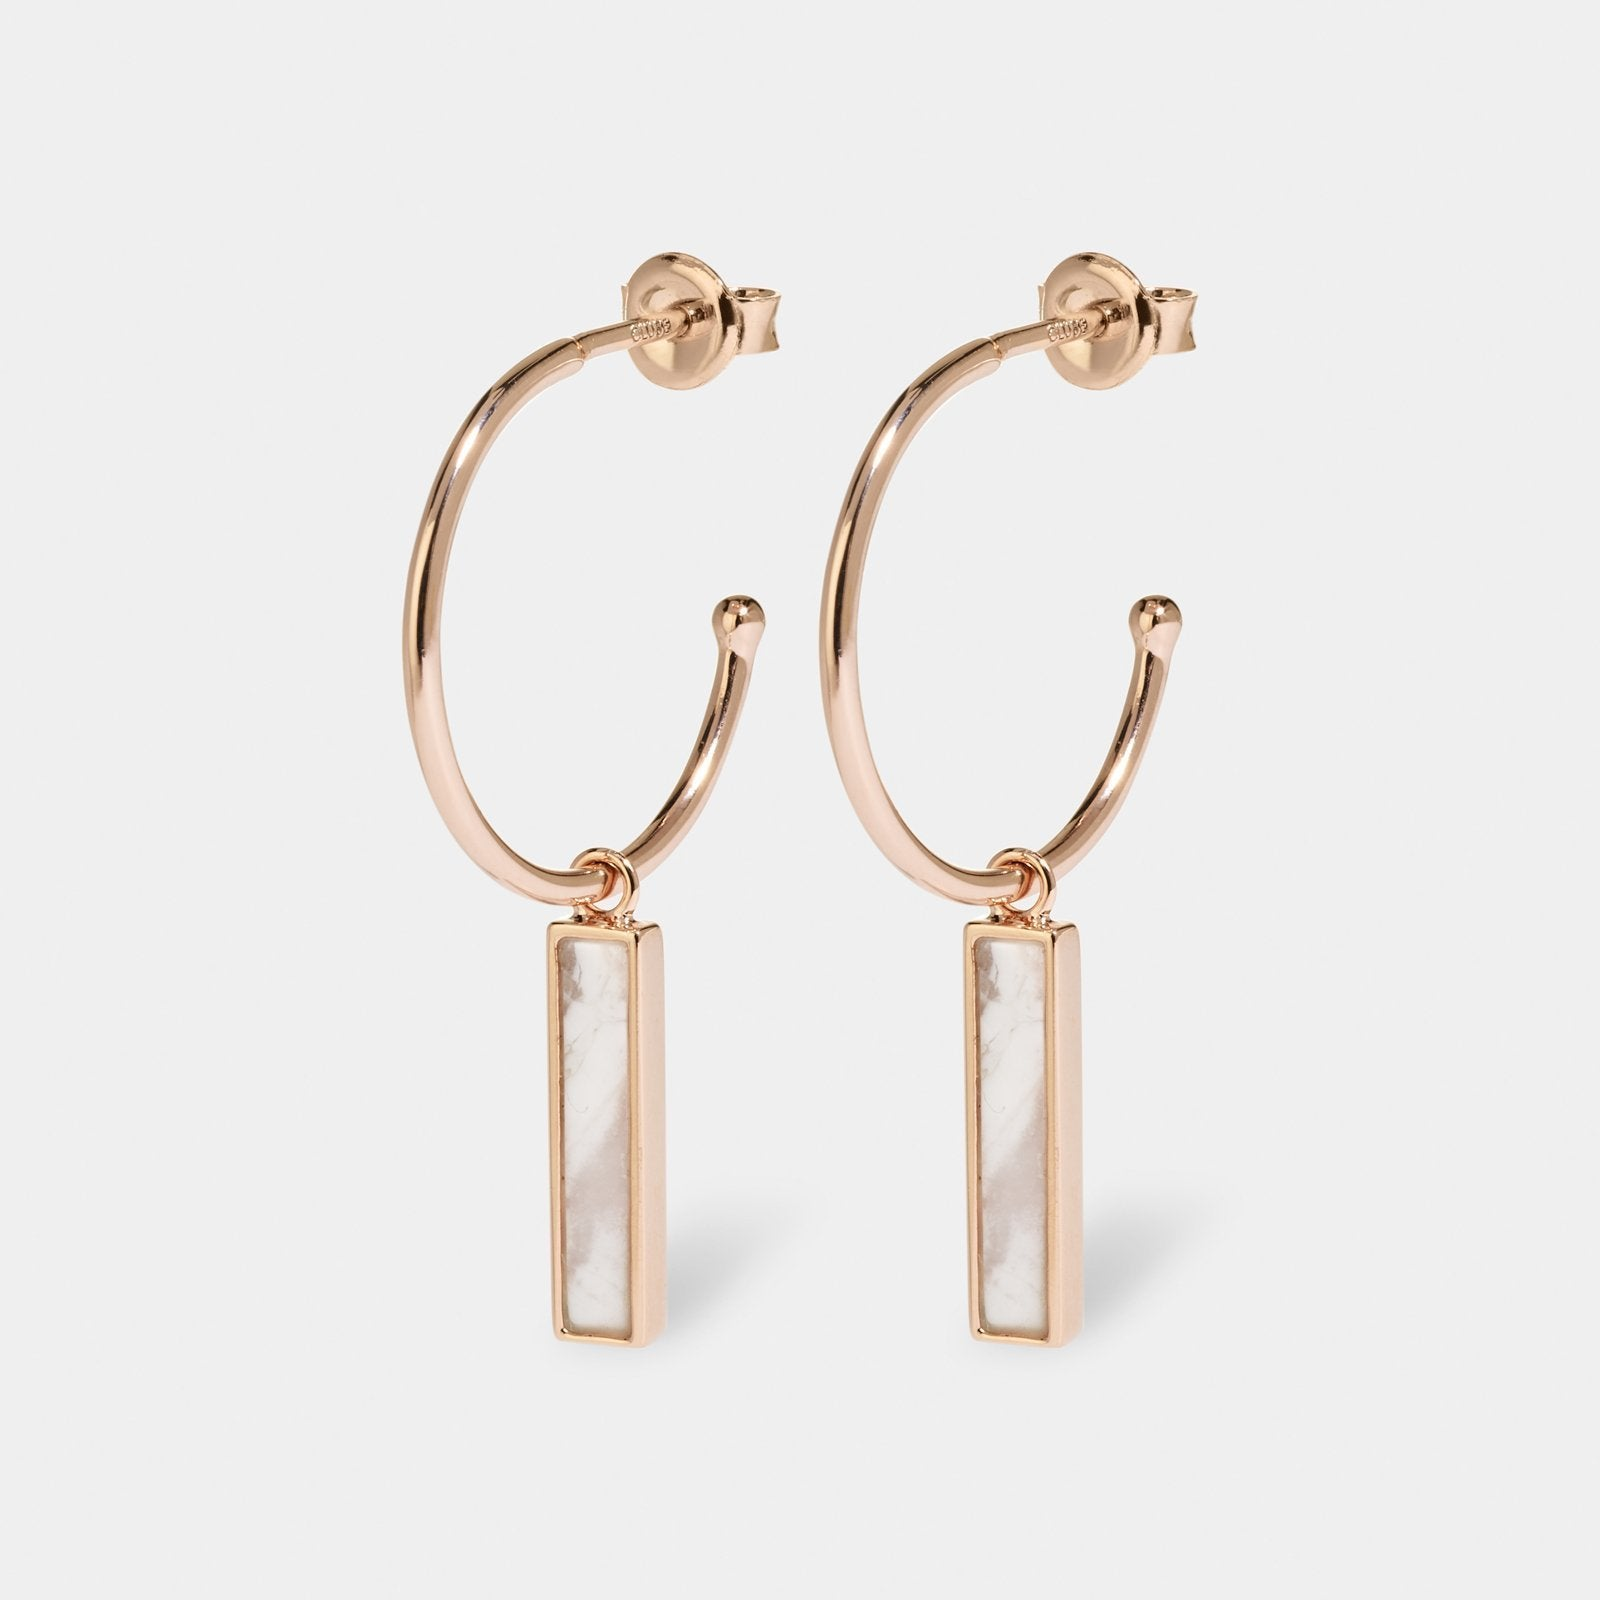 CLUSE Idylle Rose Gold Marble Bar Hoop Earrings CLJ50001 - Orecchini